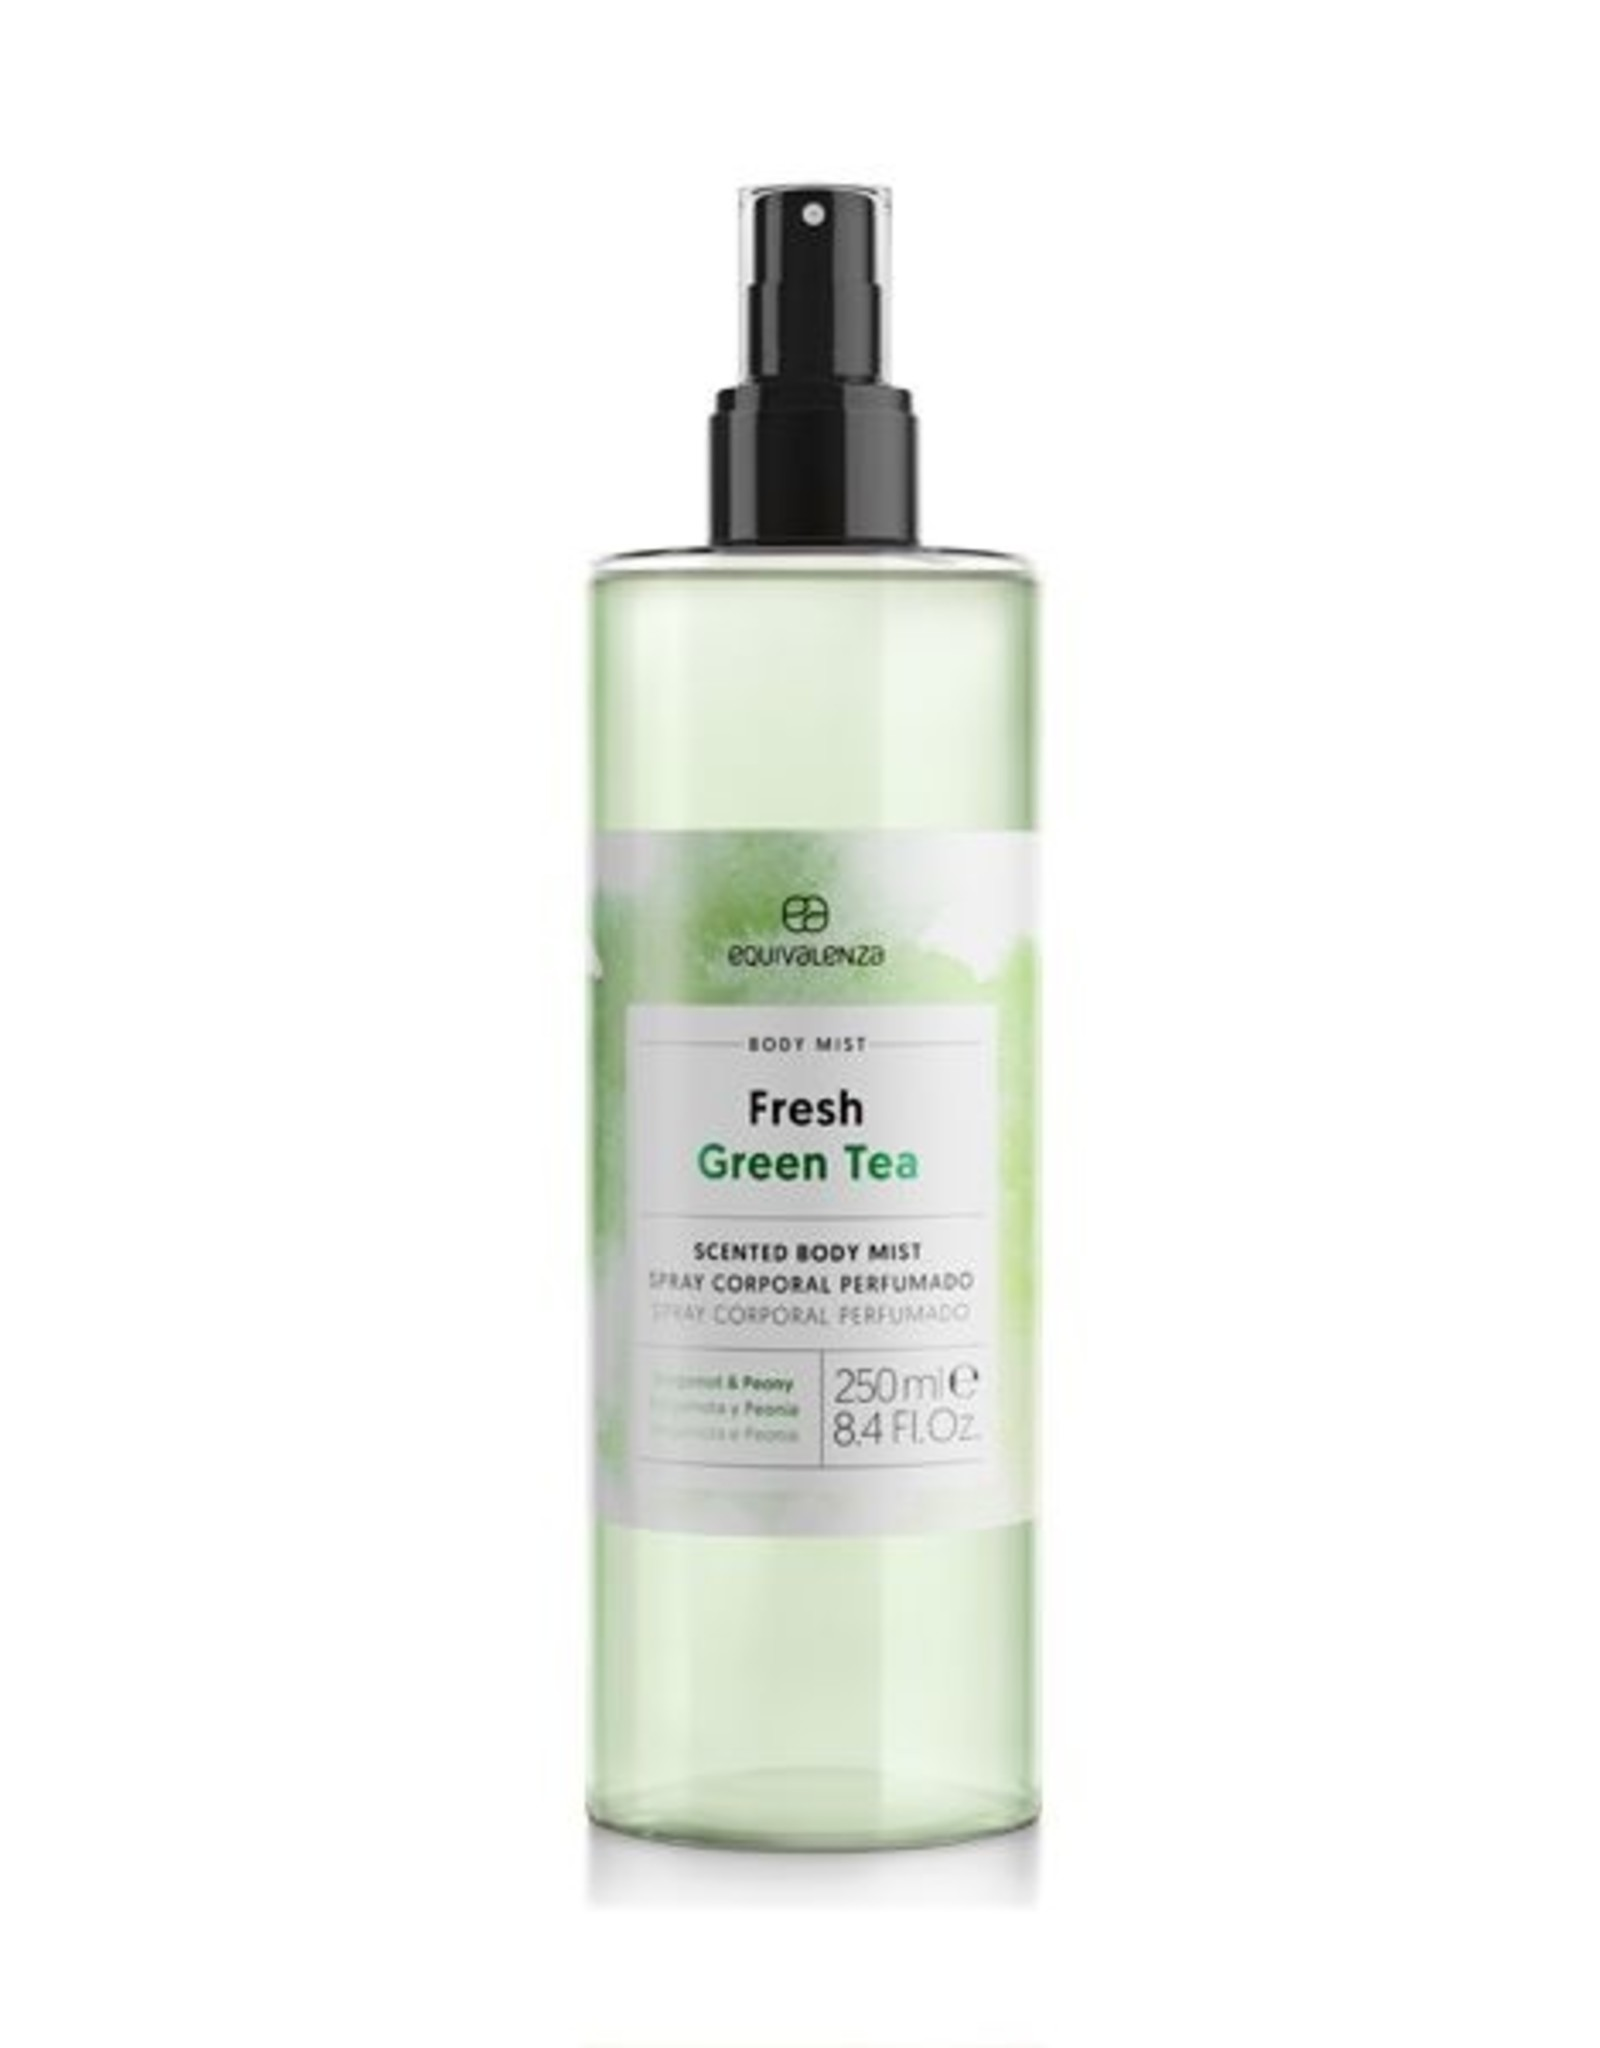 Equivalenza Fresh Green Tea Body Mist